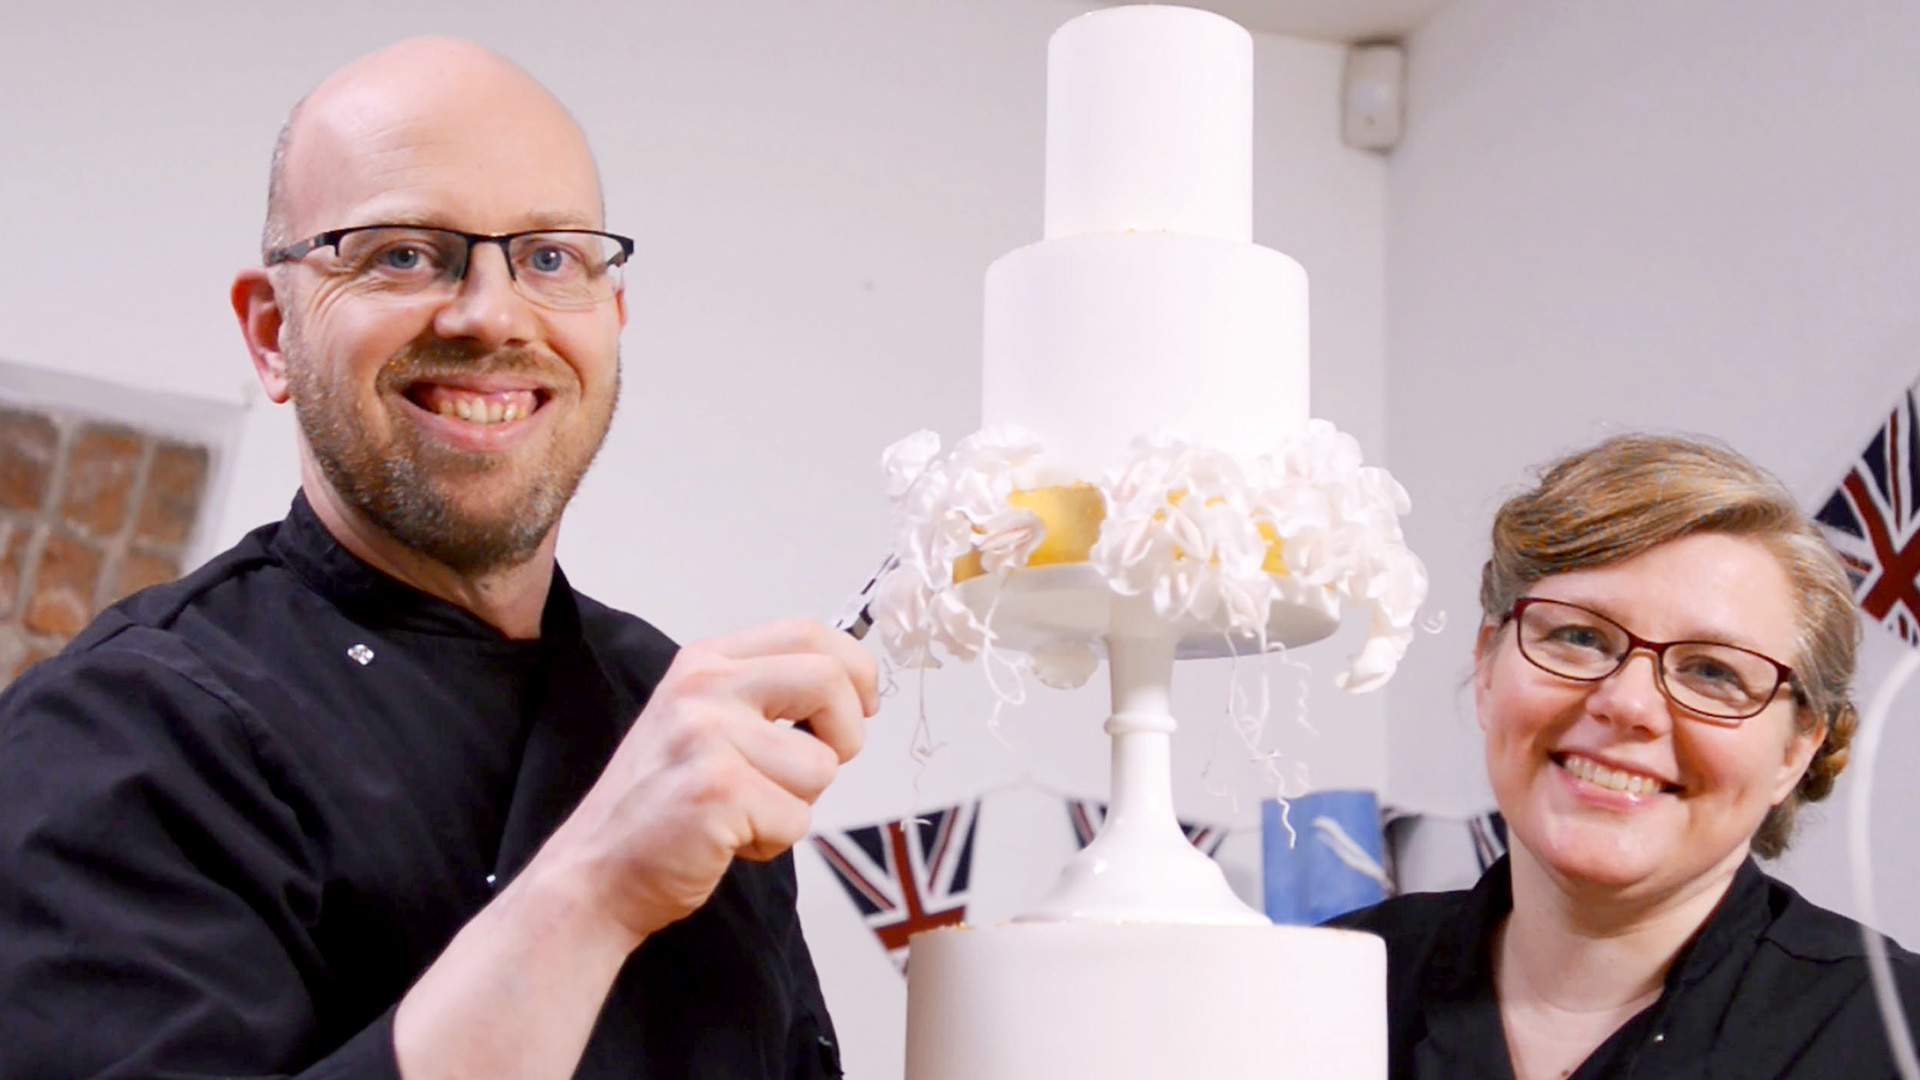 Two cake makers pose with their cake